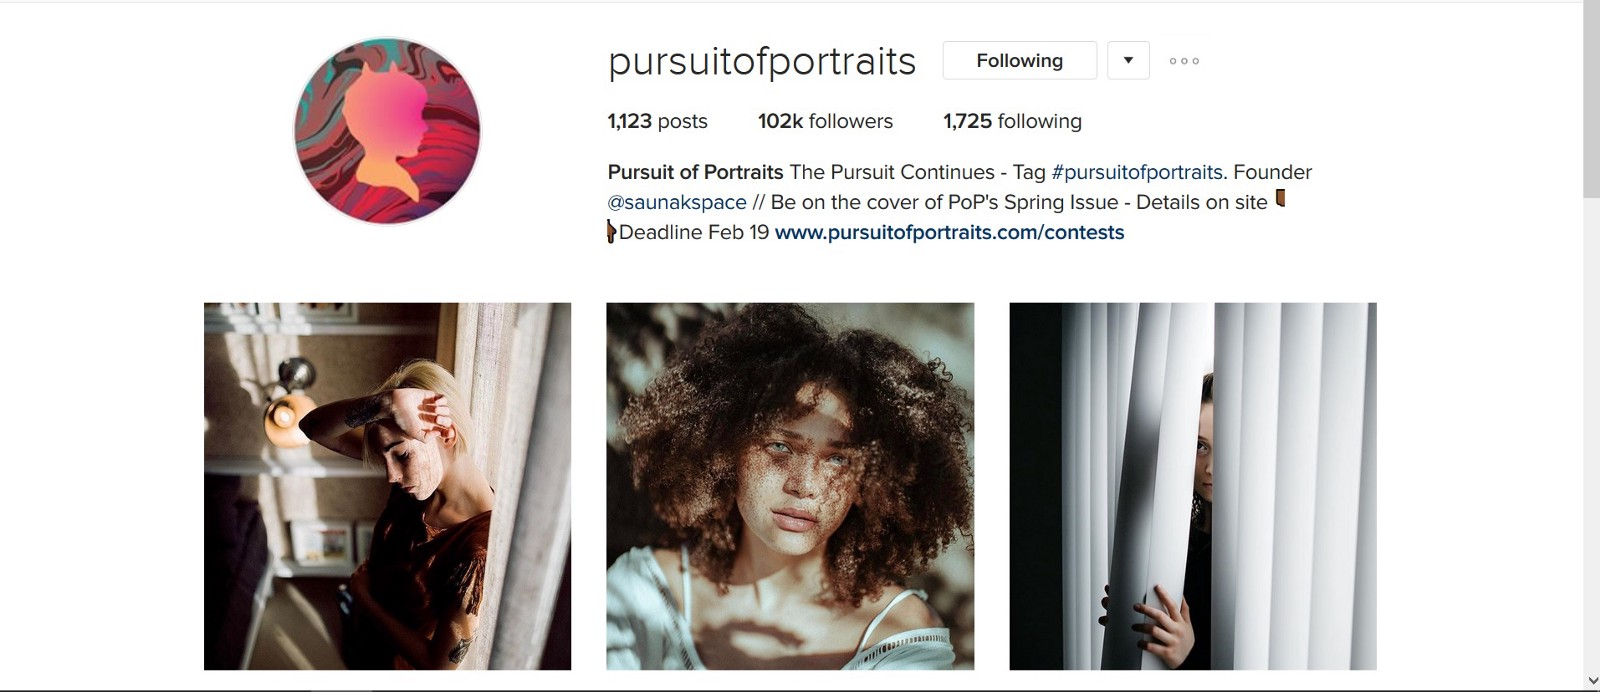 Top 10 Portrait Feature Accounts On Instagram Dan Bullman Medium